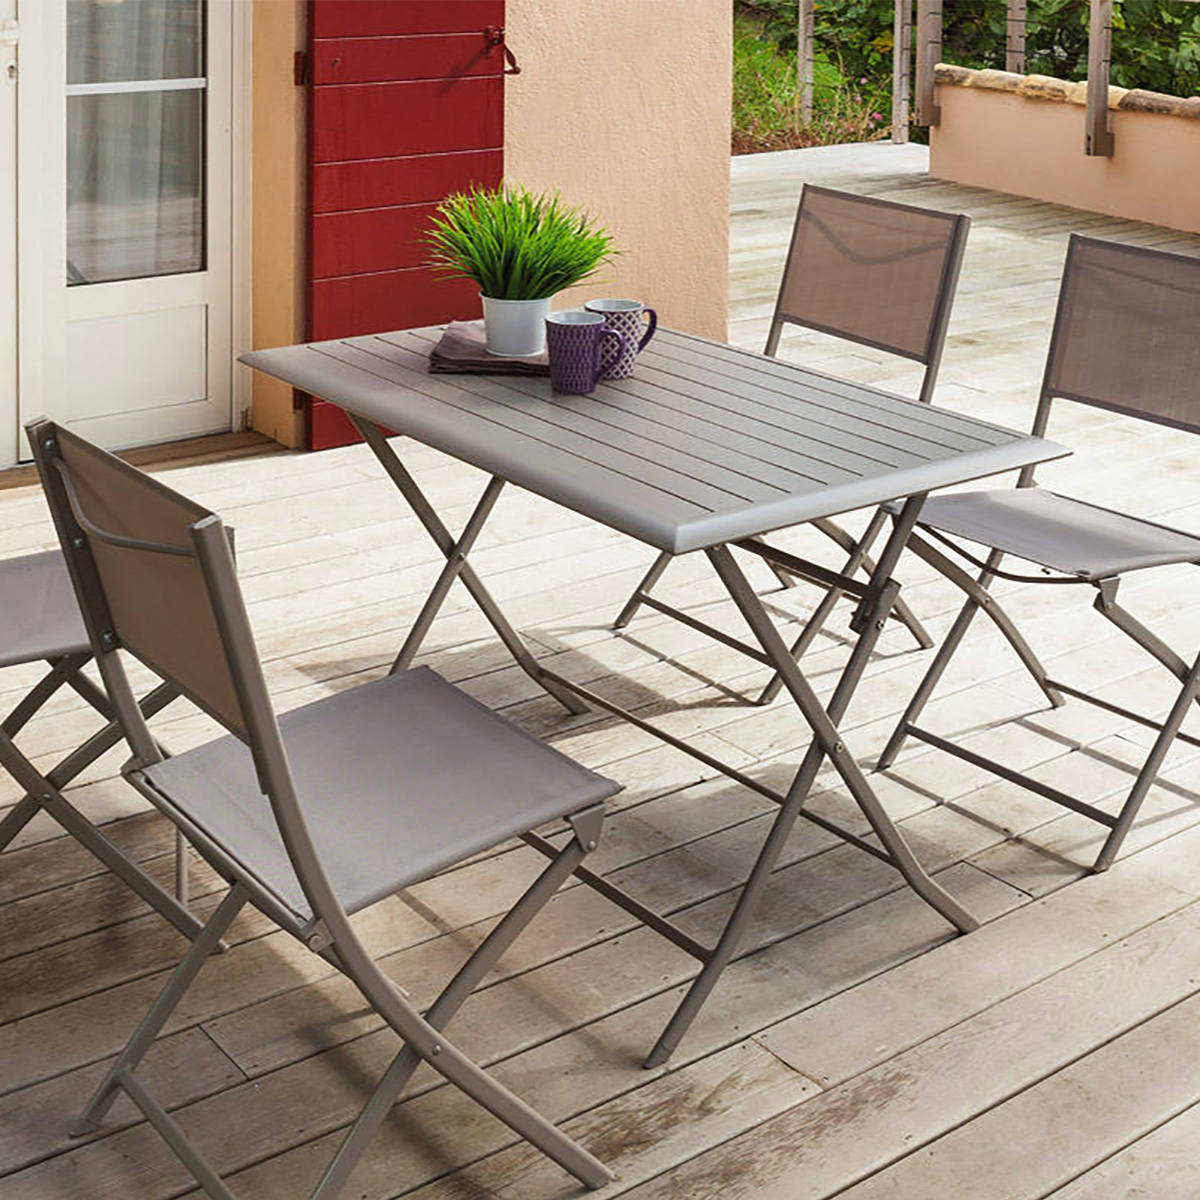 Table de balcon pliante rectangulaire azua taupe hesp ride for Table de jardin terrasse